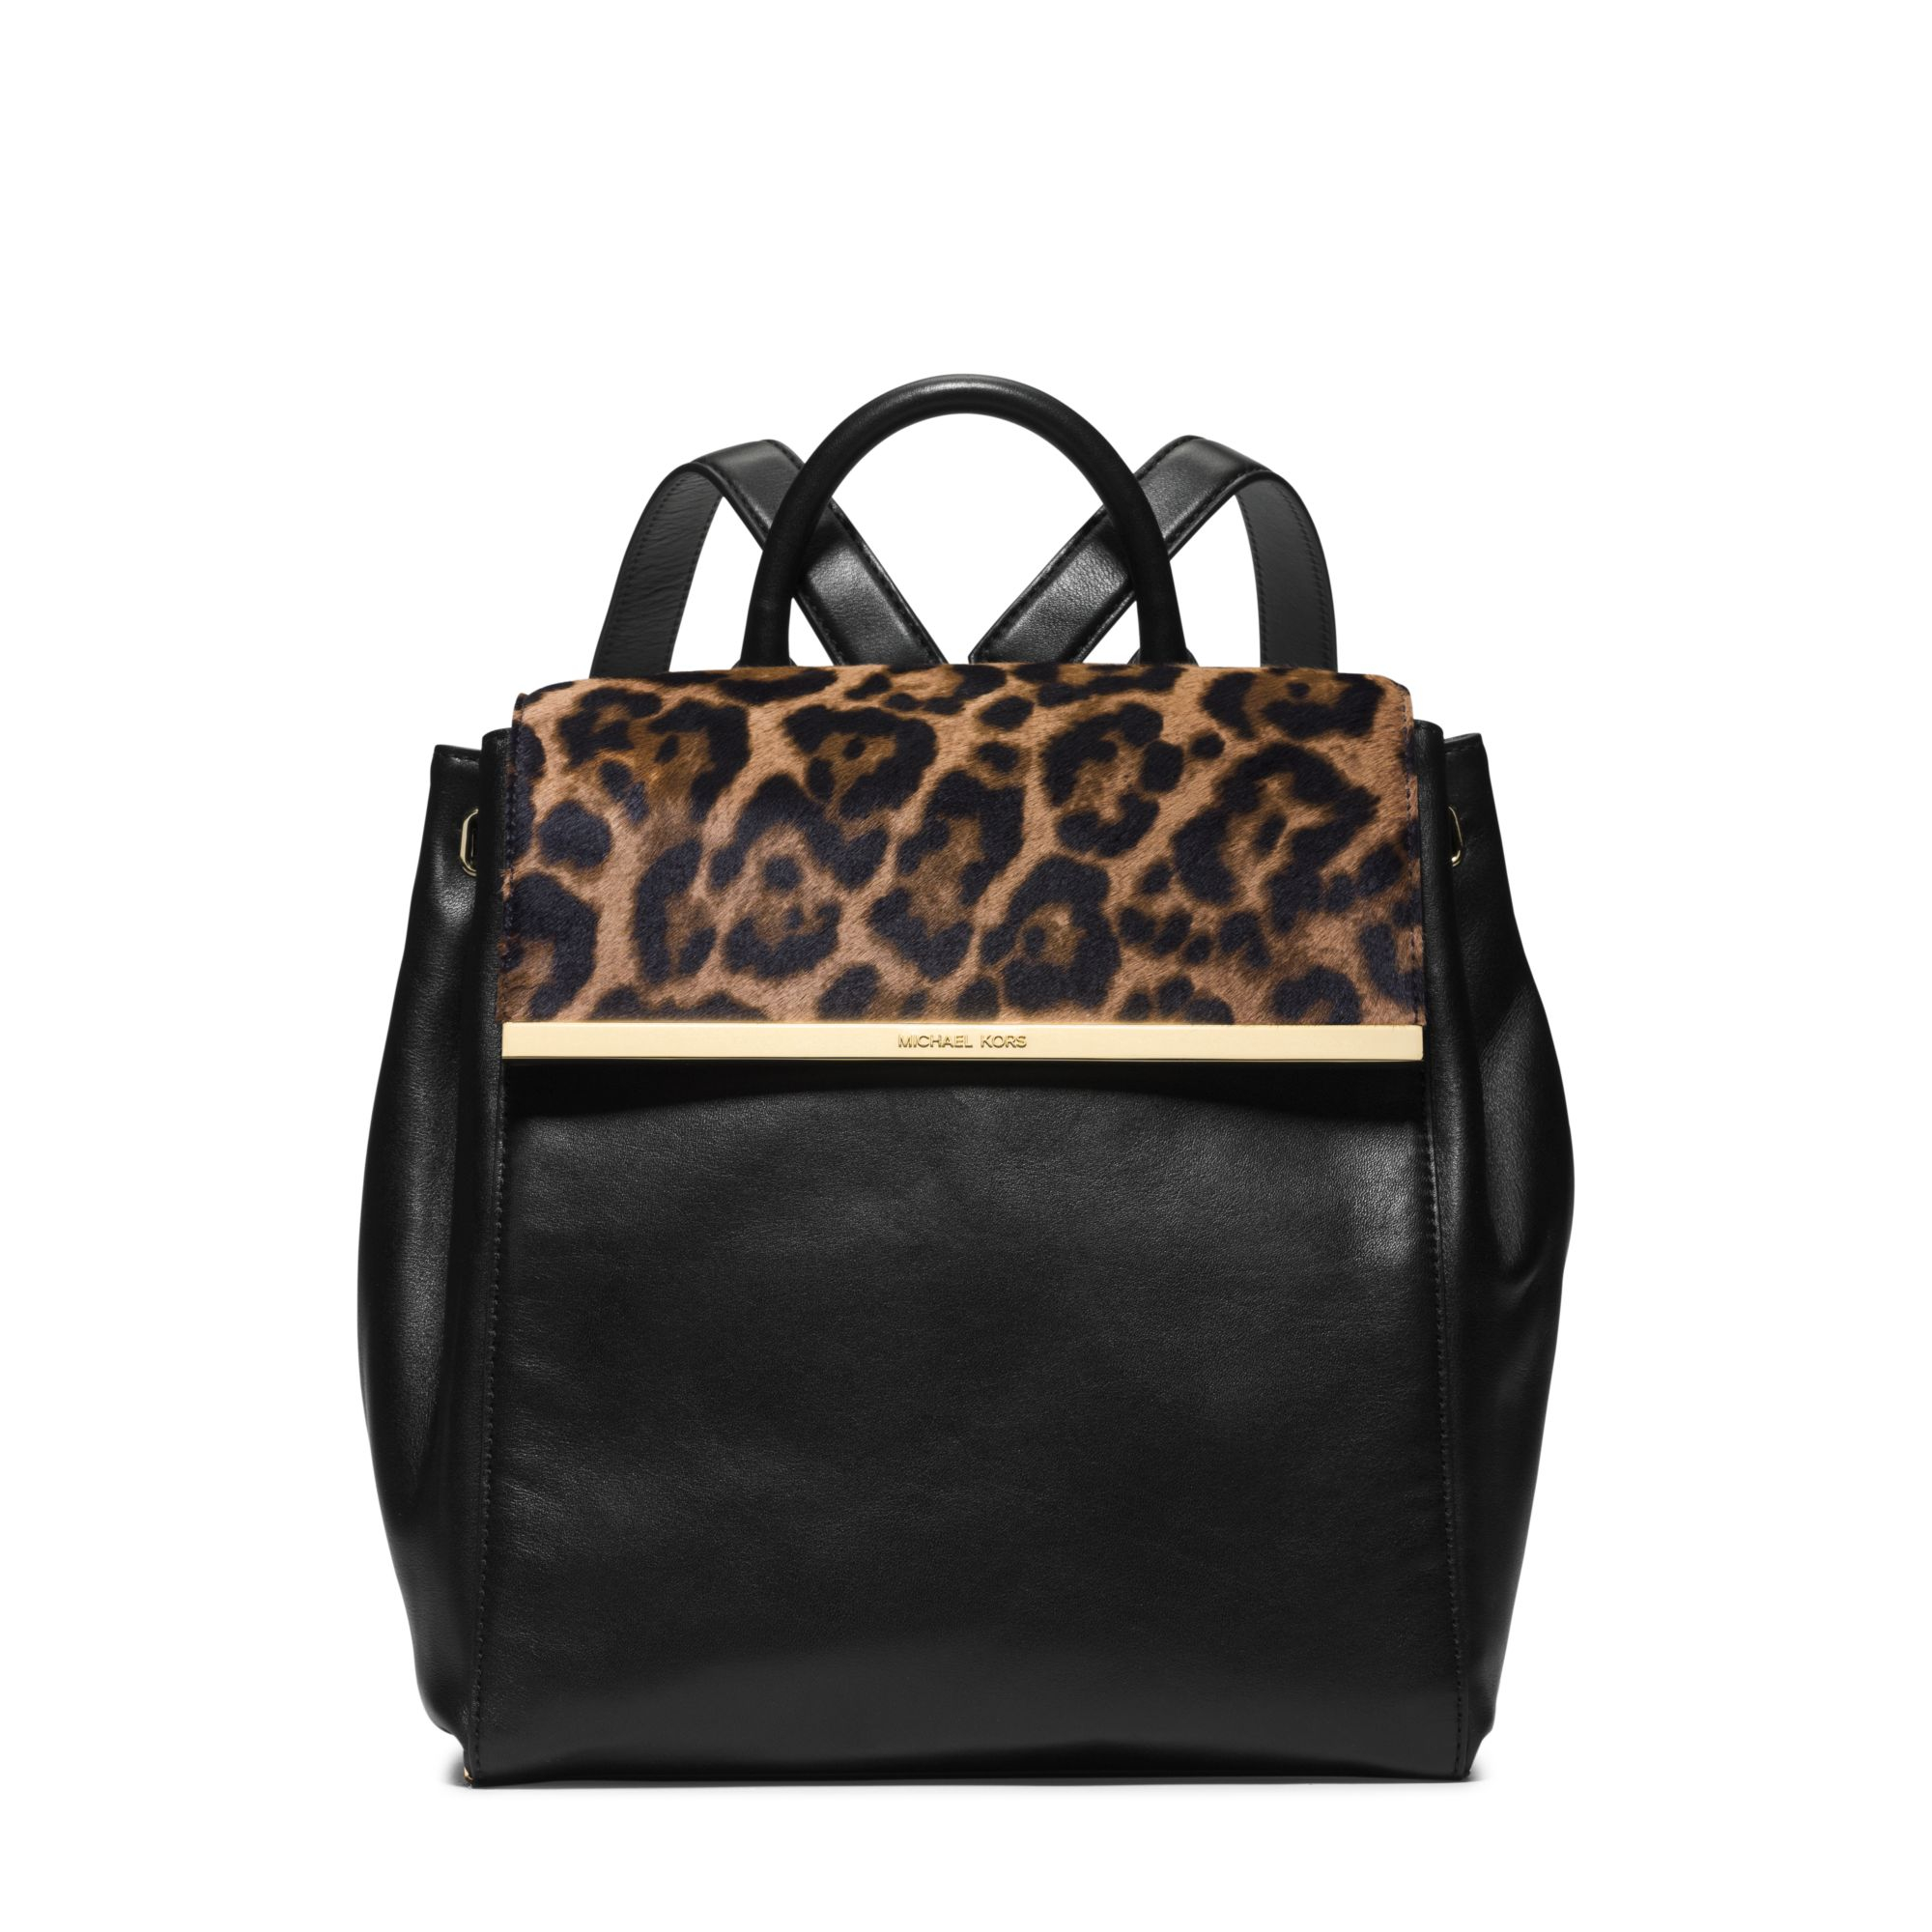 036d3e49ff85 Michael Kors Lana Leopard-Print Hair Calf And Leather Backpack in ...